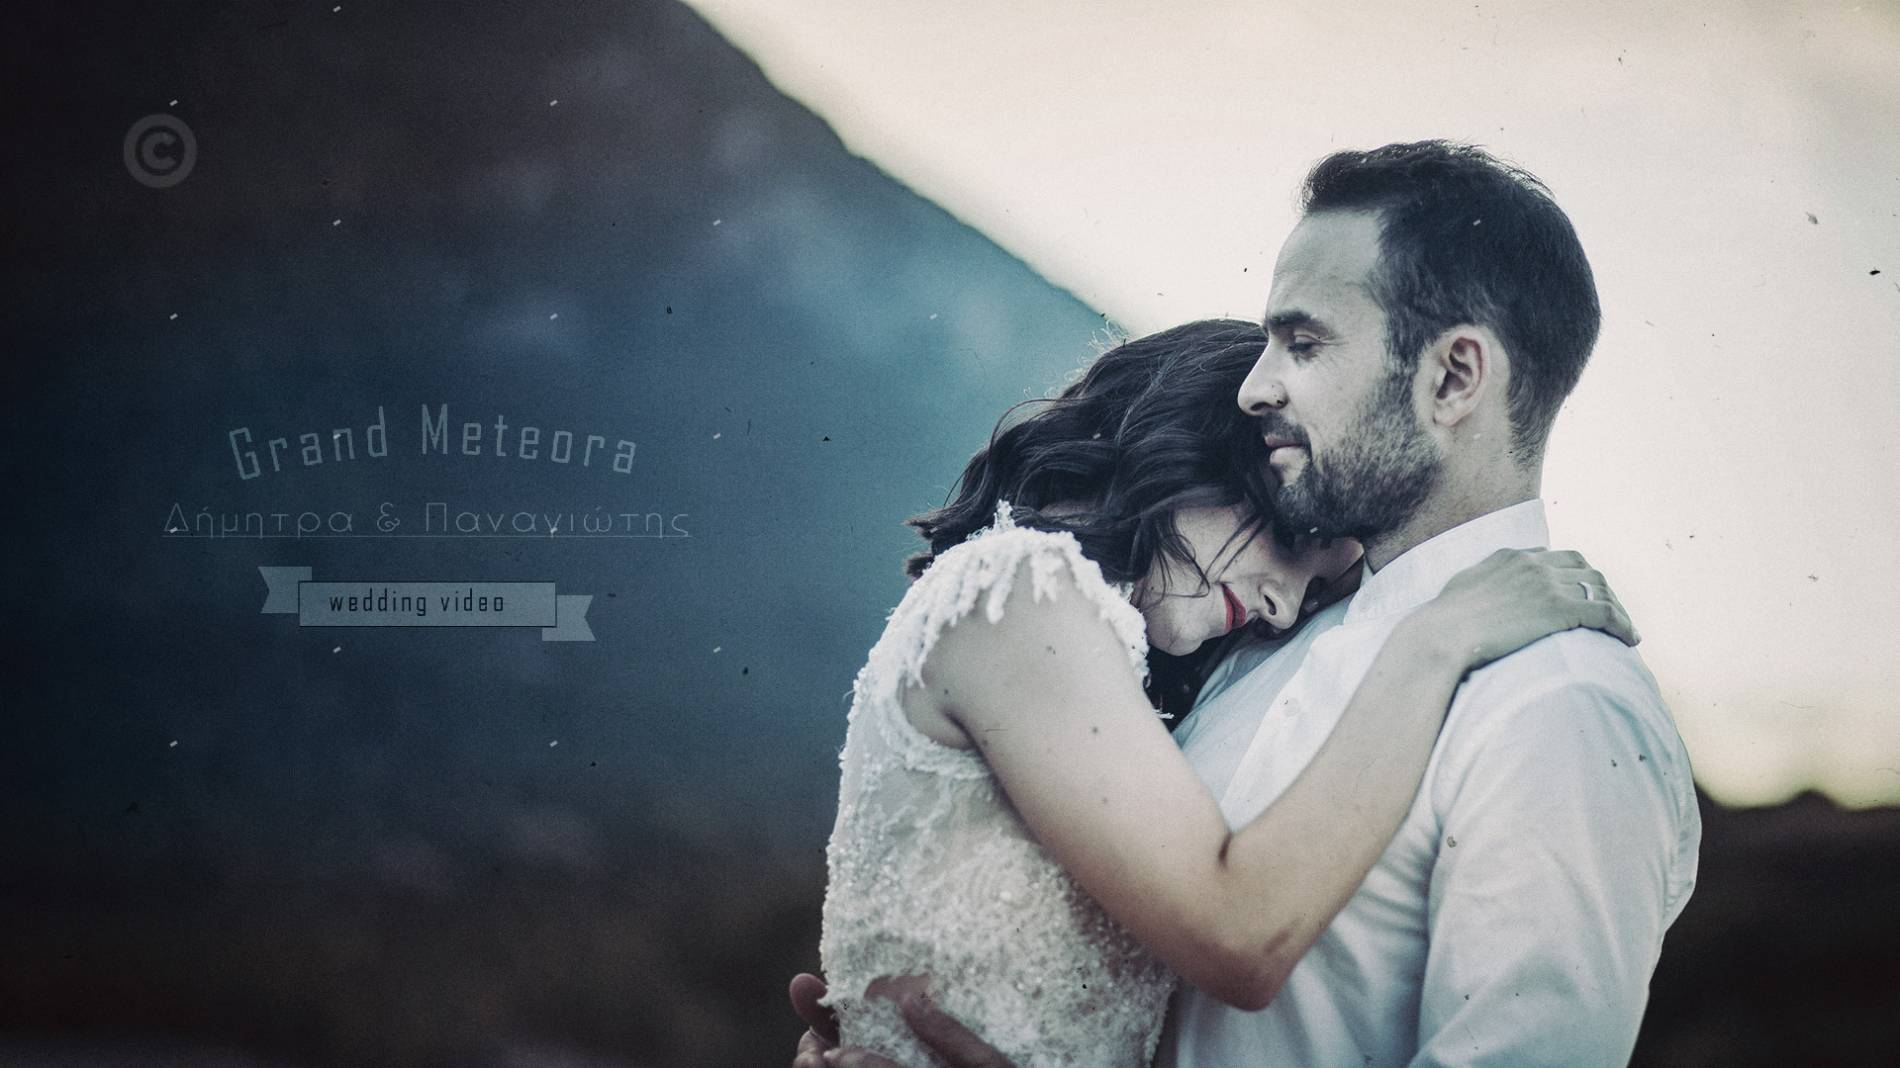 Grand Meteora wedding video